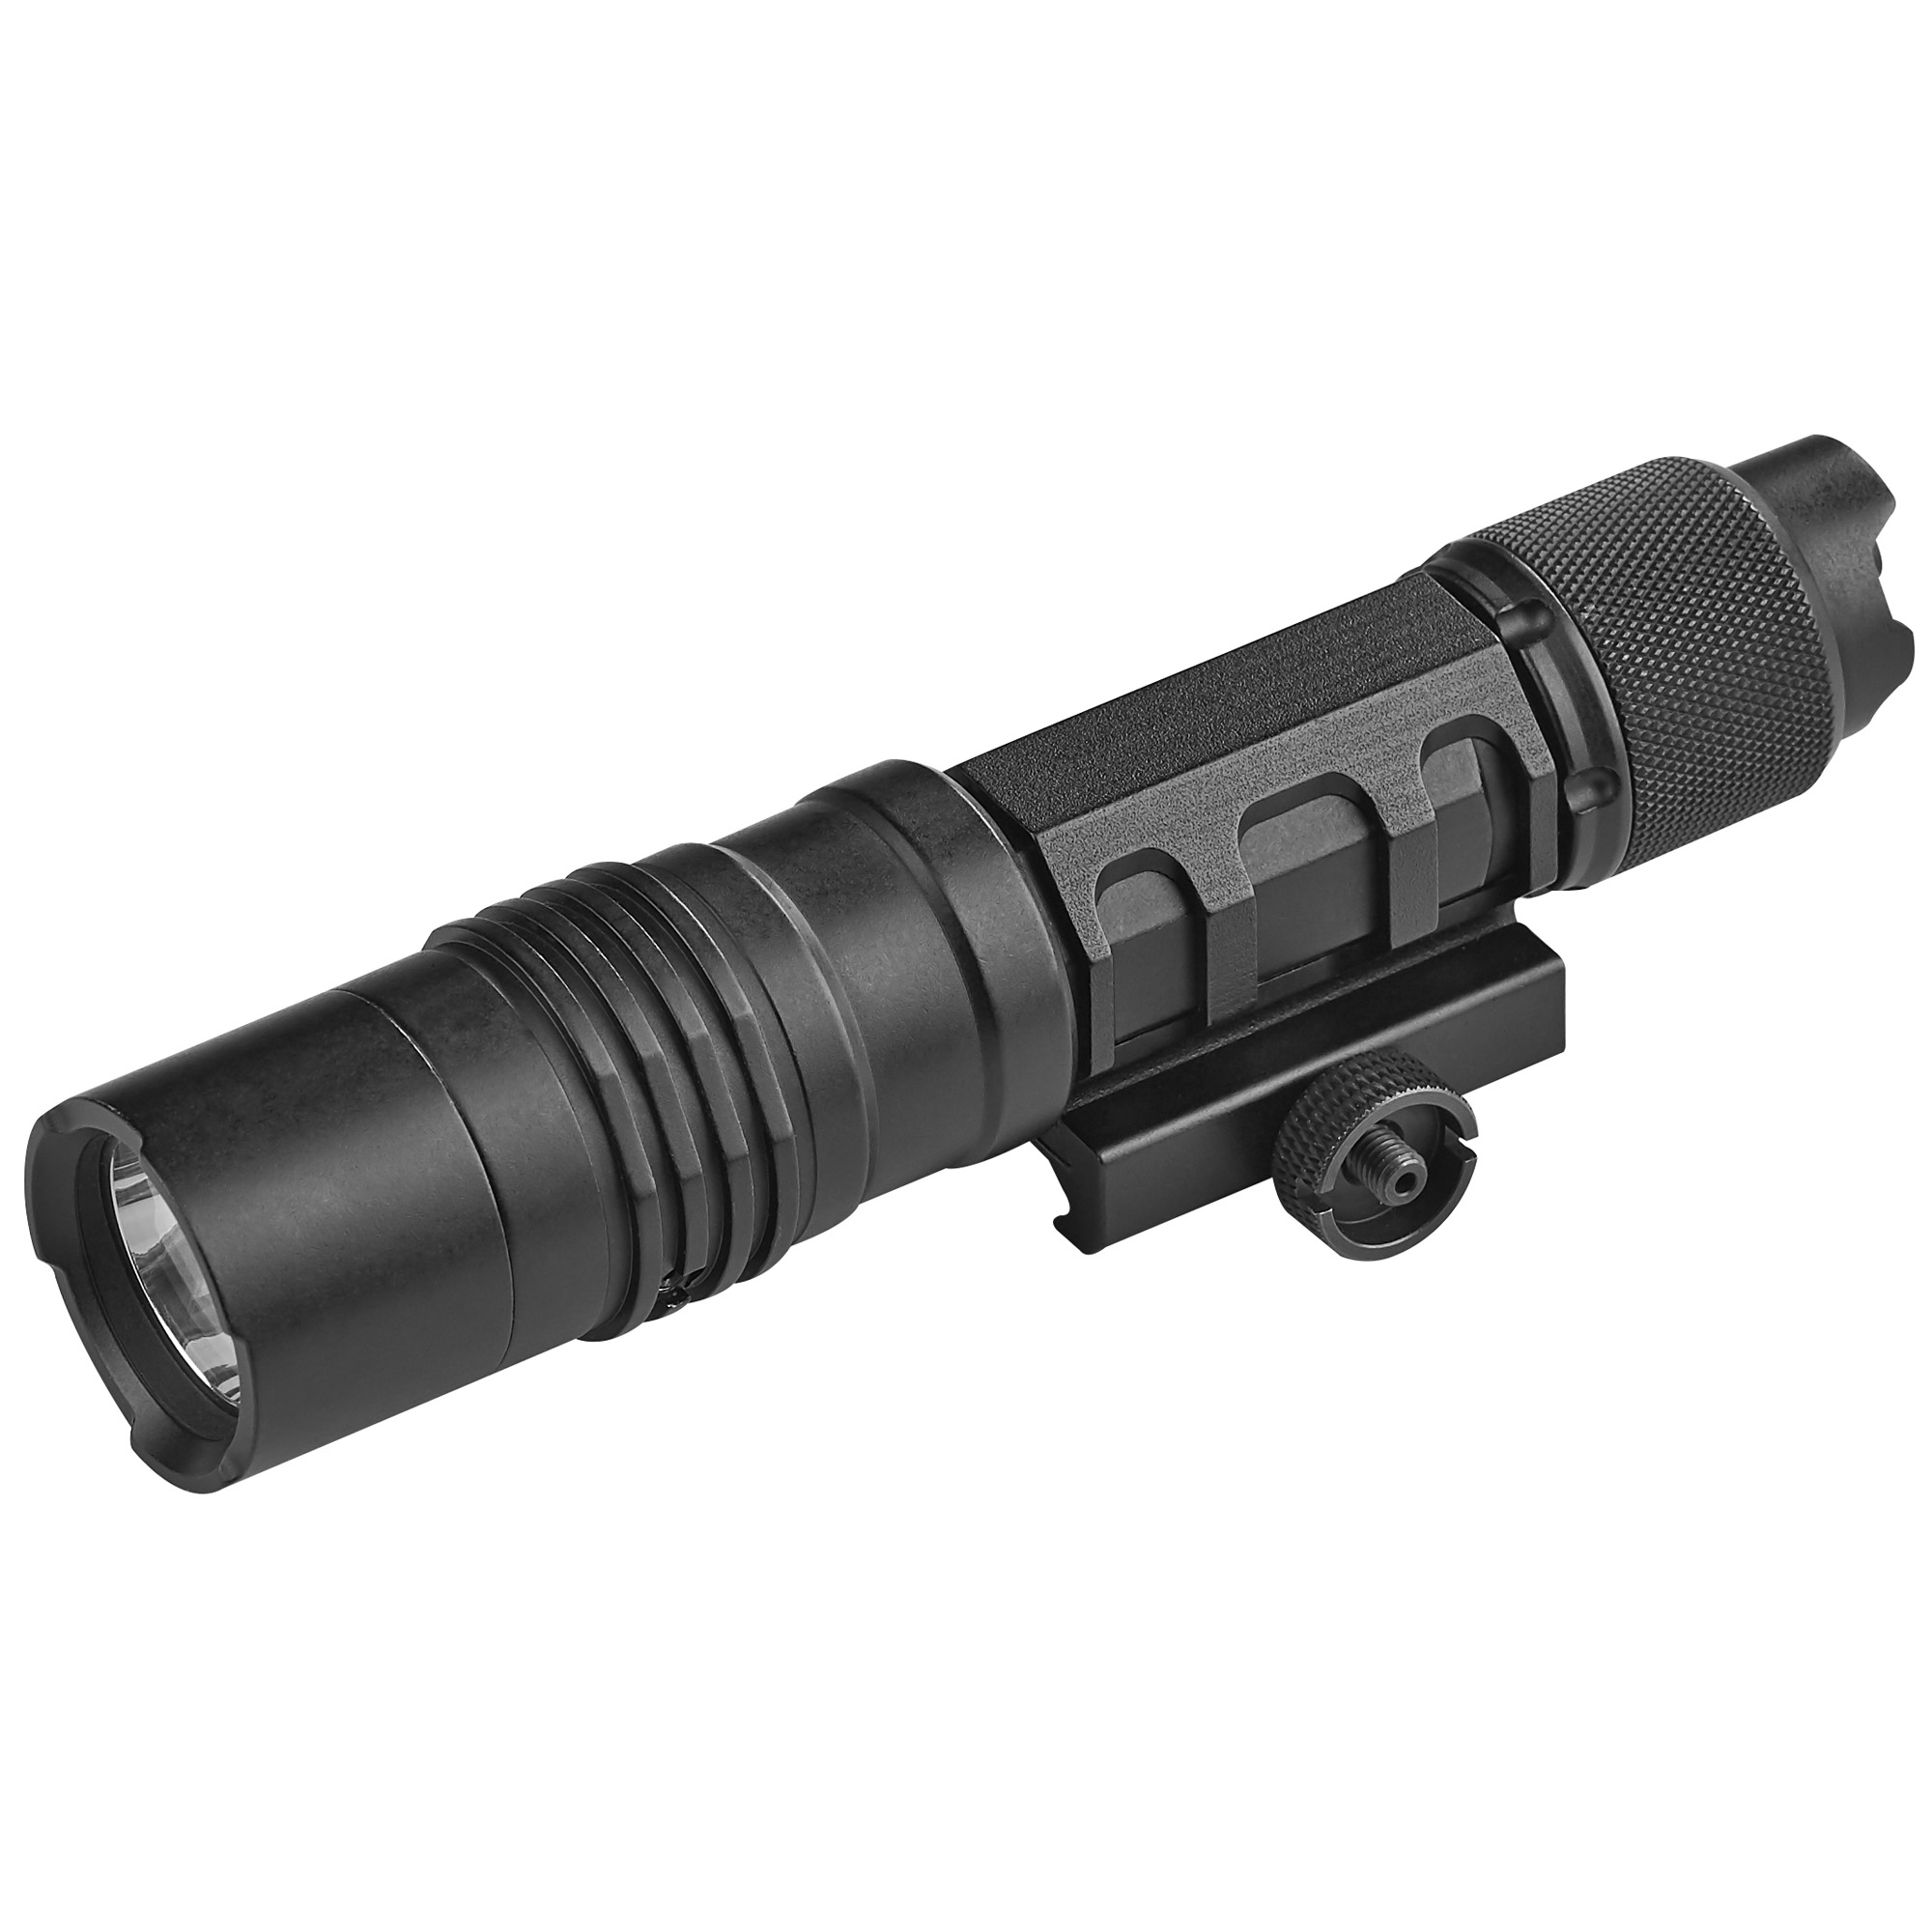 "The ProTac Rail Mount HL-X Laser is a 1""000 lumen long gun light with an integrated red laser. It features MULTI-FUEL innovation that allows it to accept Streamlight's 18650 USB battery or CR123A lithium batteries"" ensuring you'll always have a beam when you need it."